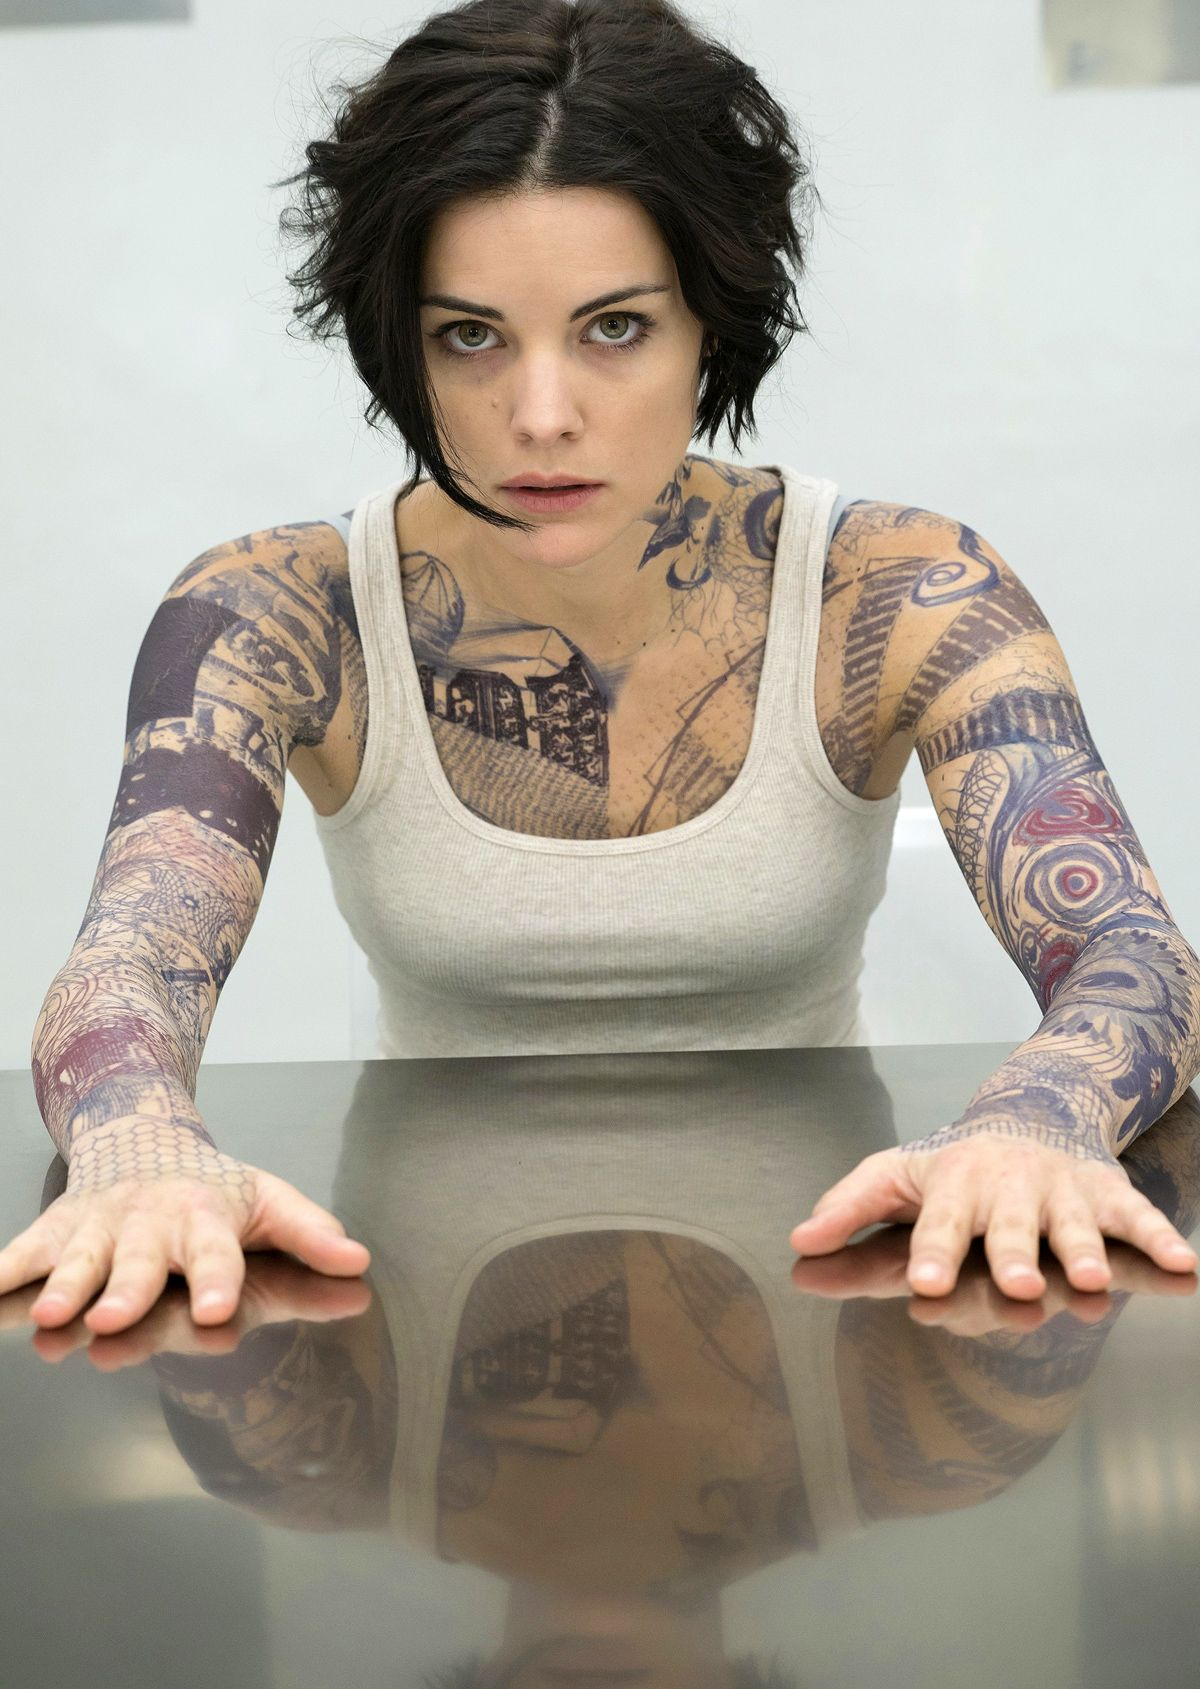 Woman naked showing their tattoos, abused young girls free galleries